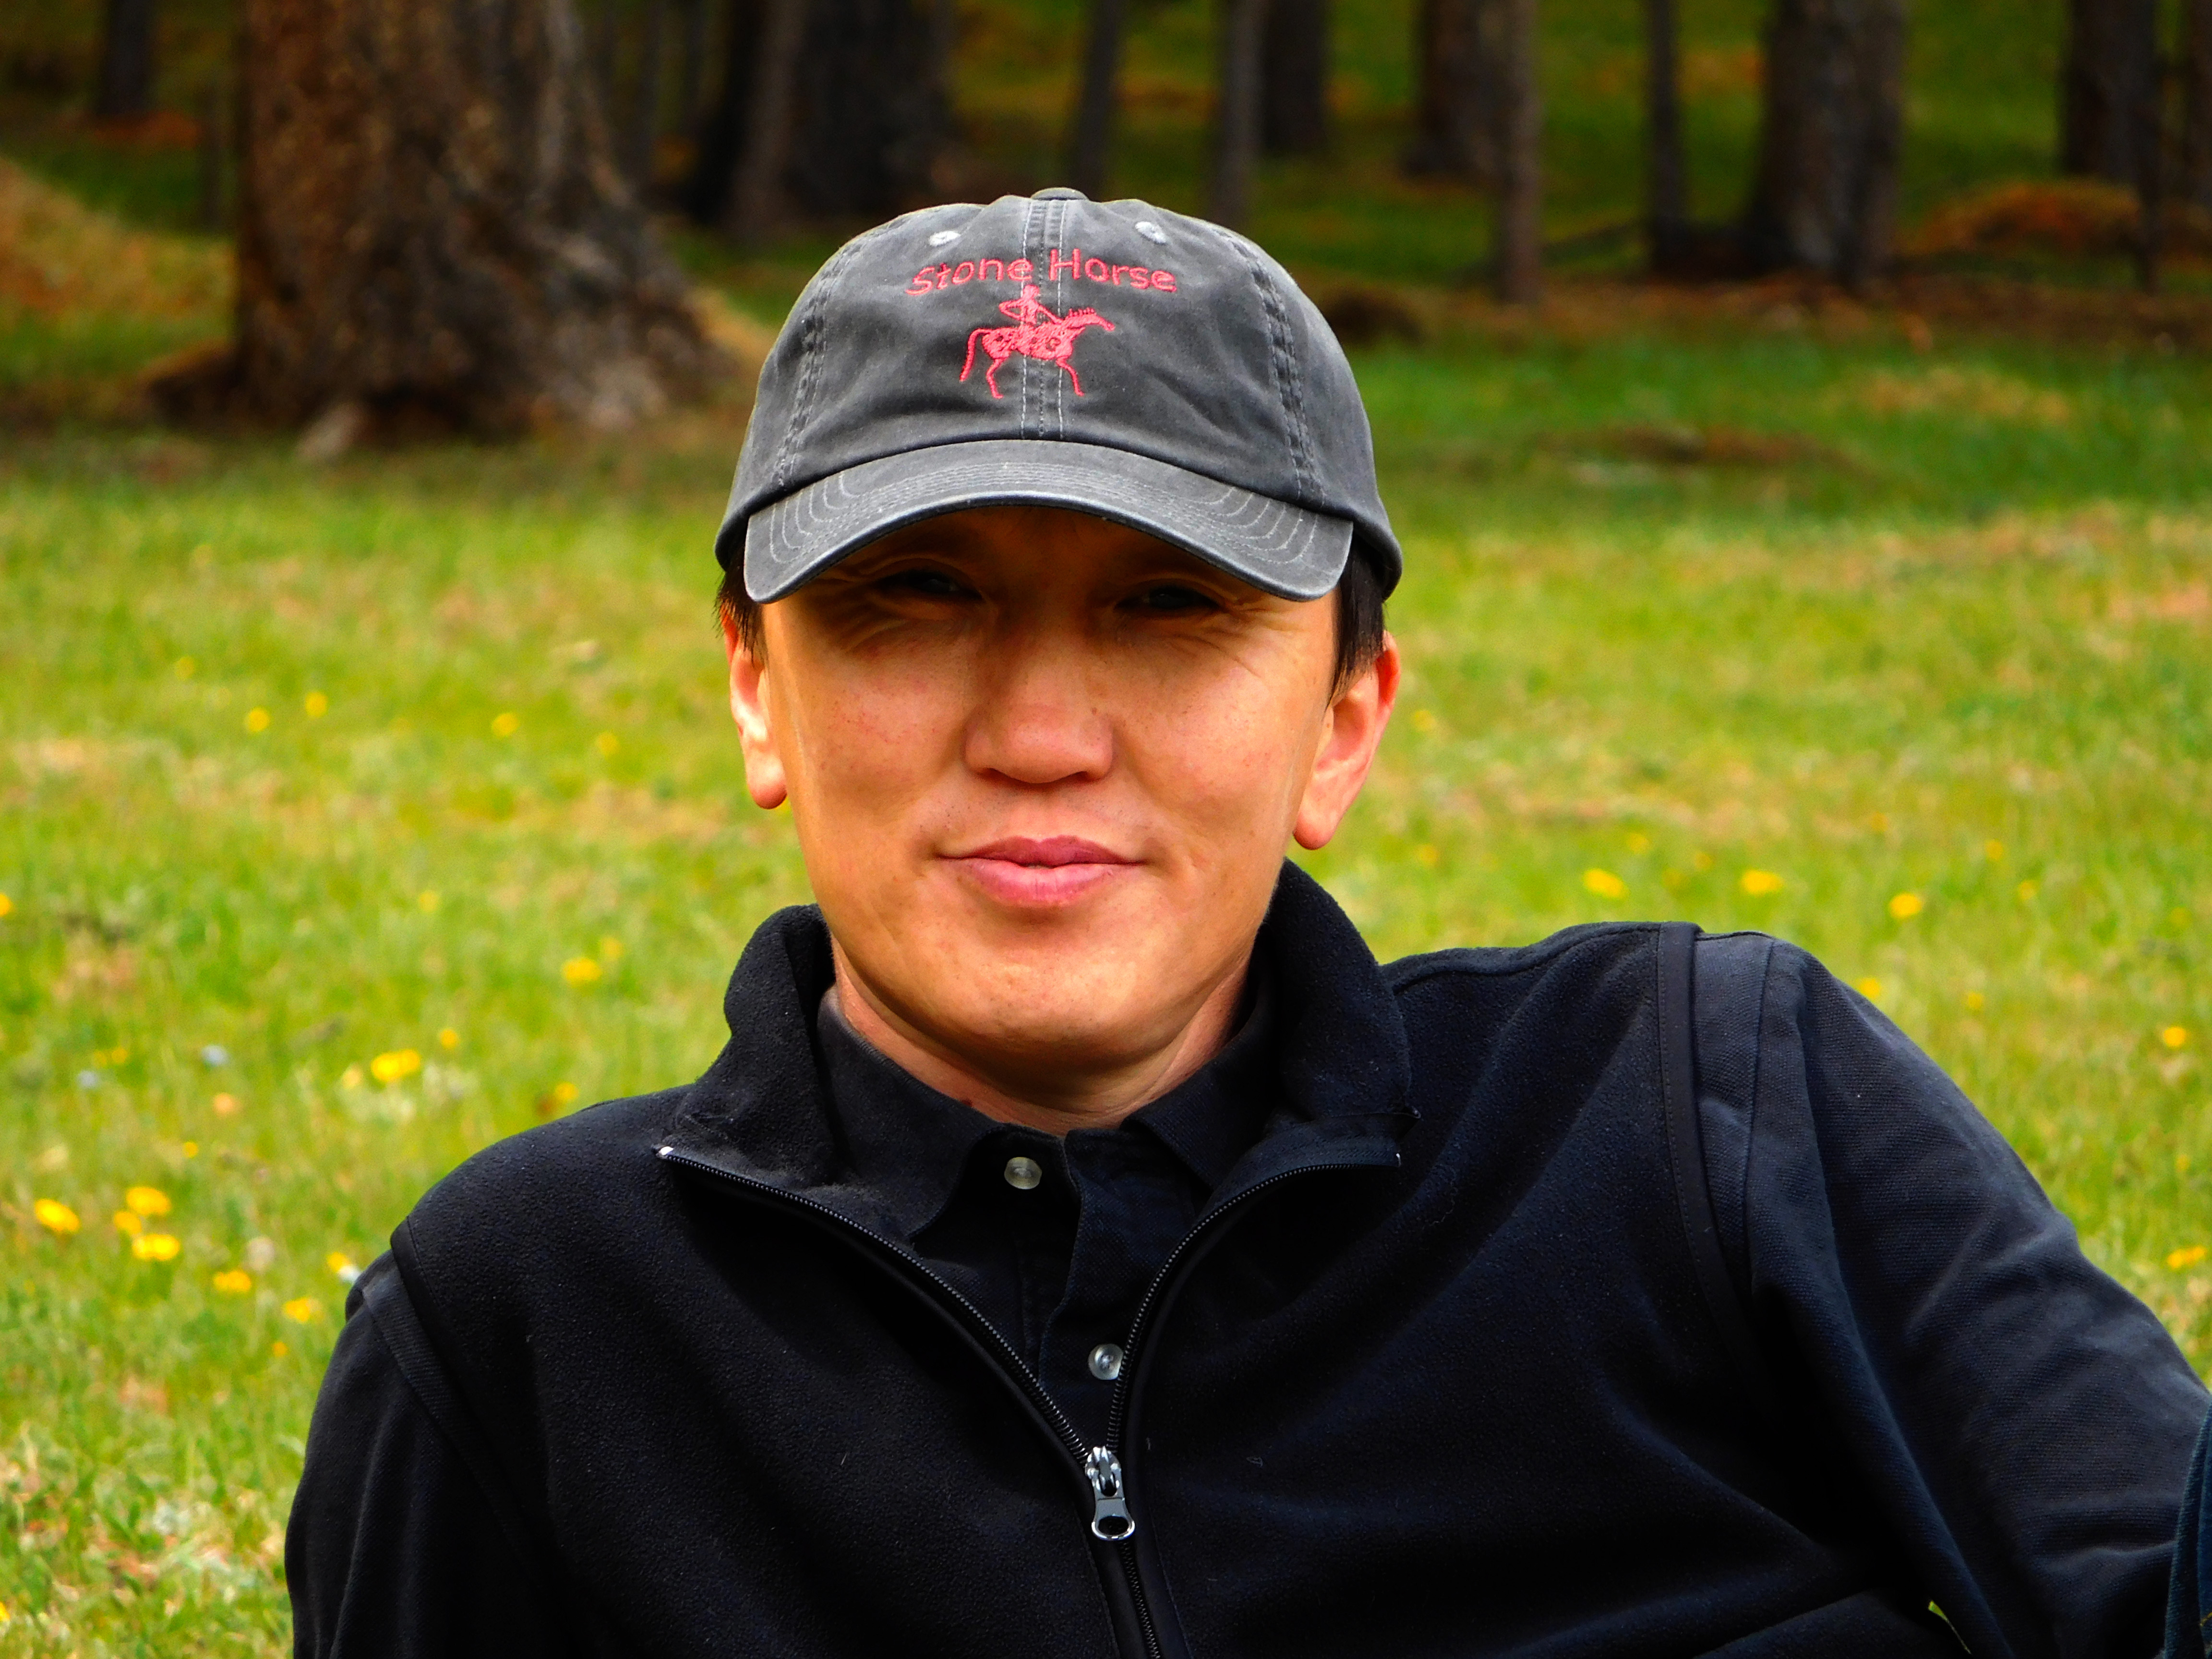 Travel Mongolia on Horseback with Experienced Guides, Davaa Team Member Driver, Stone Horse Expeditions